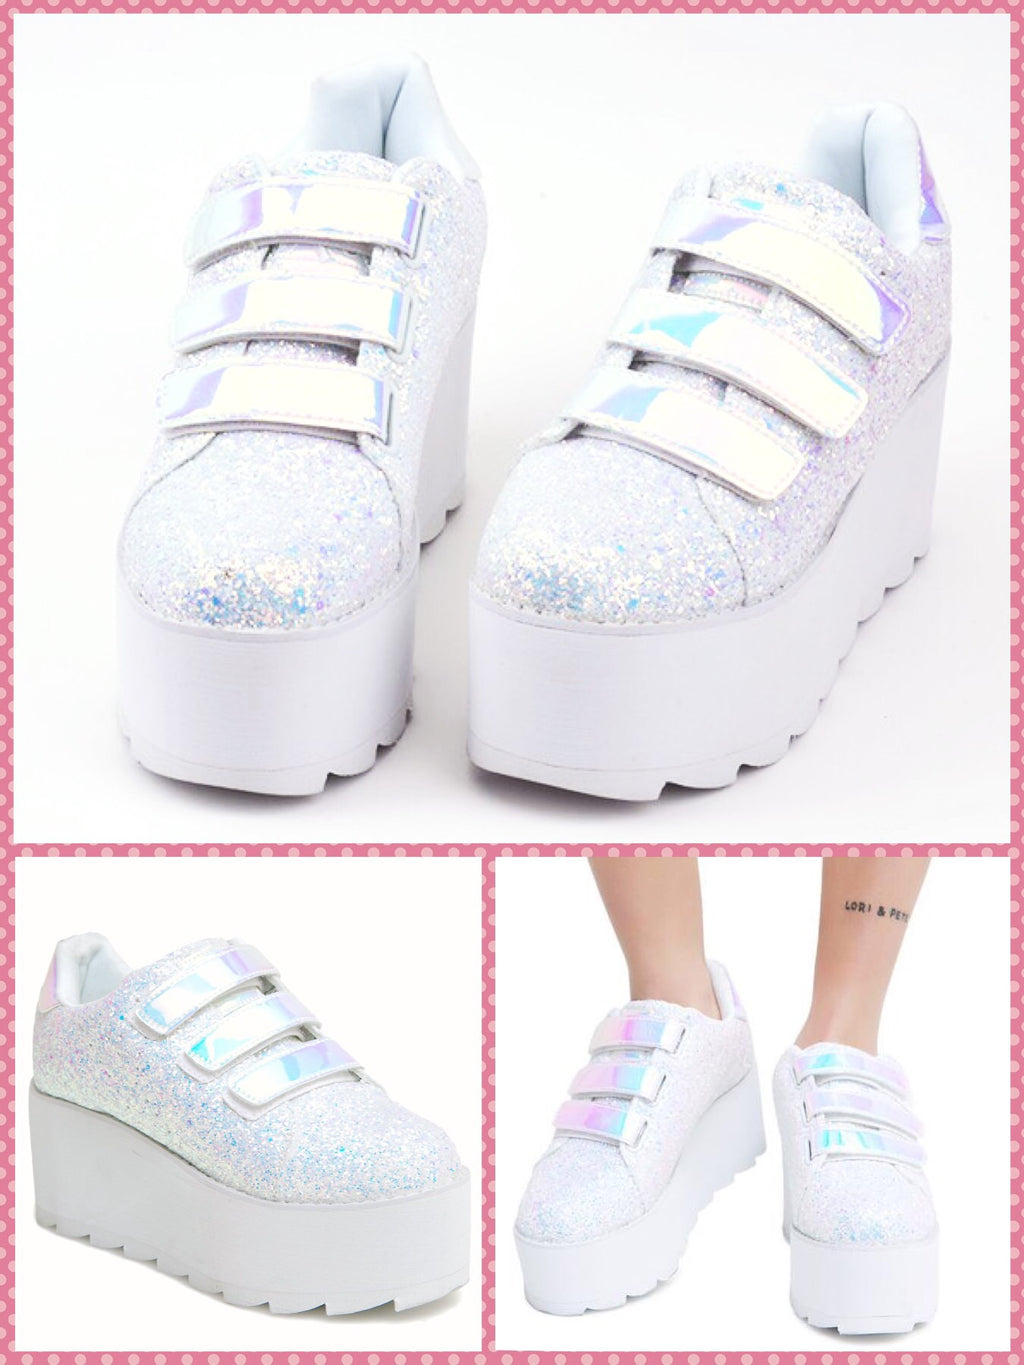 BlissGirl - Hologram Sparkle & Velvet Platforms - Silver / 36 - Harajuku - Kawaii - Alternative - Fashion